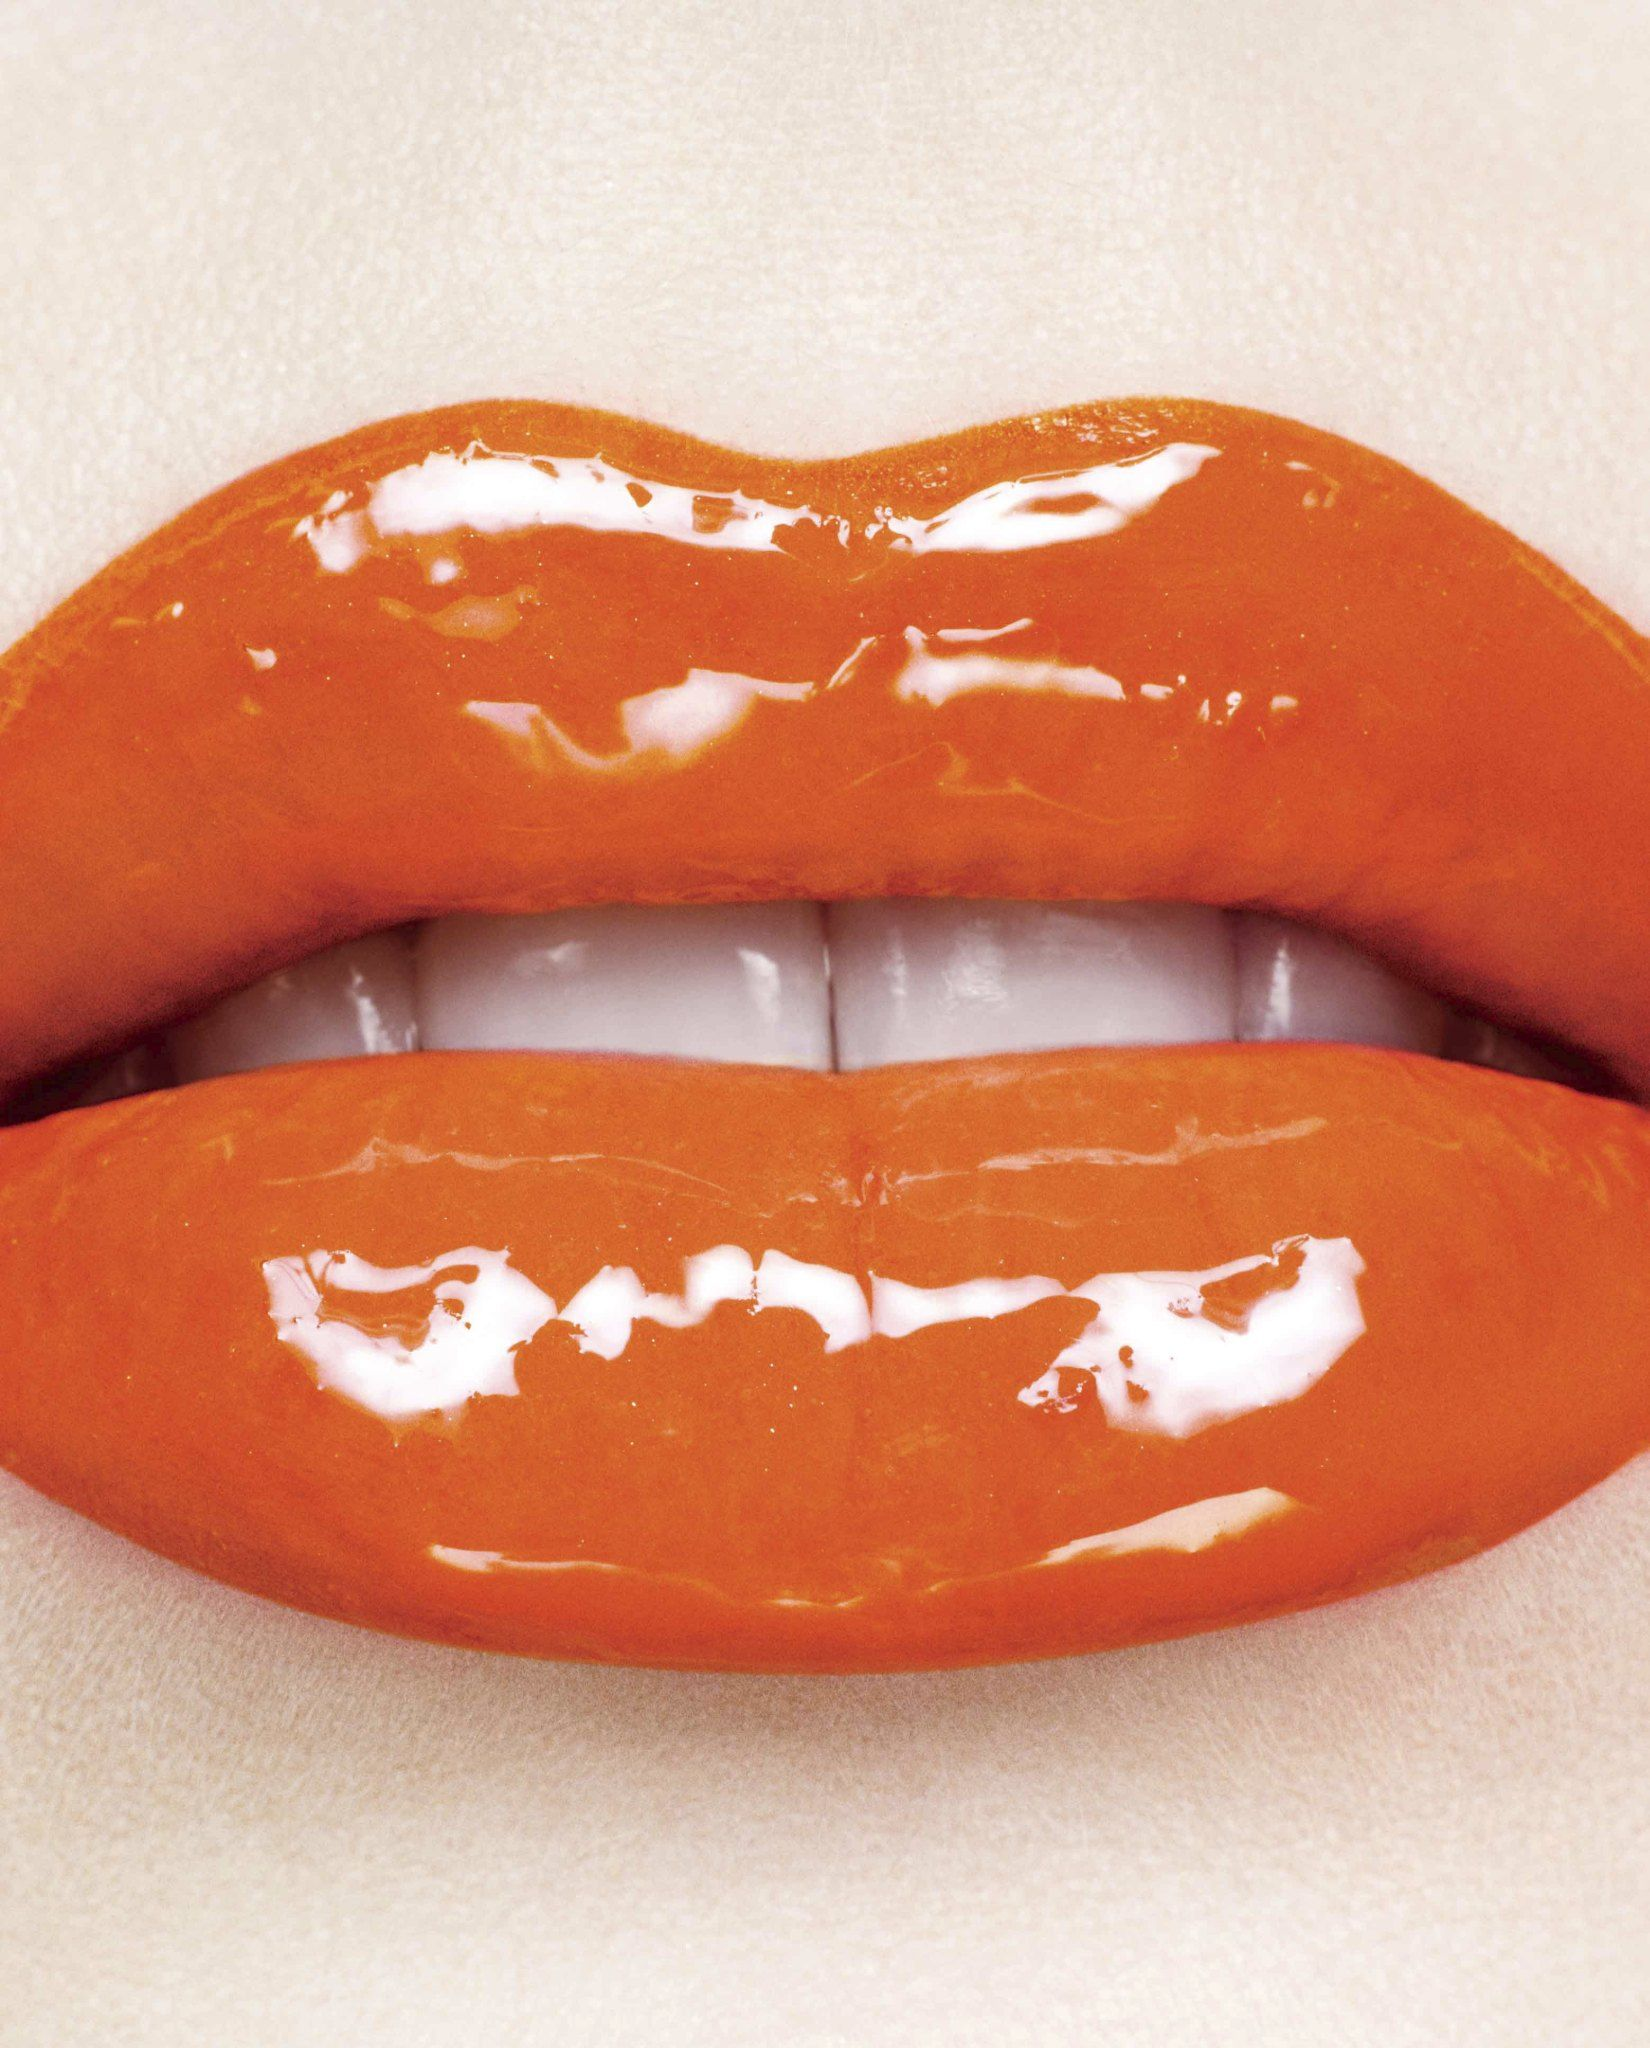 Make A Statement With Orange Gloss This Summer Givenchy Beauty